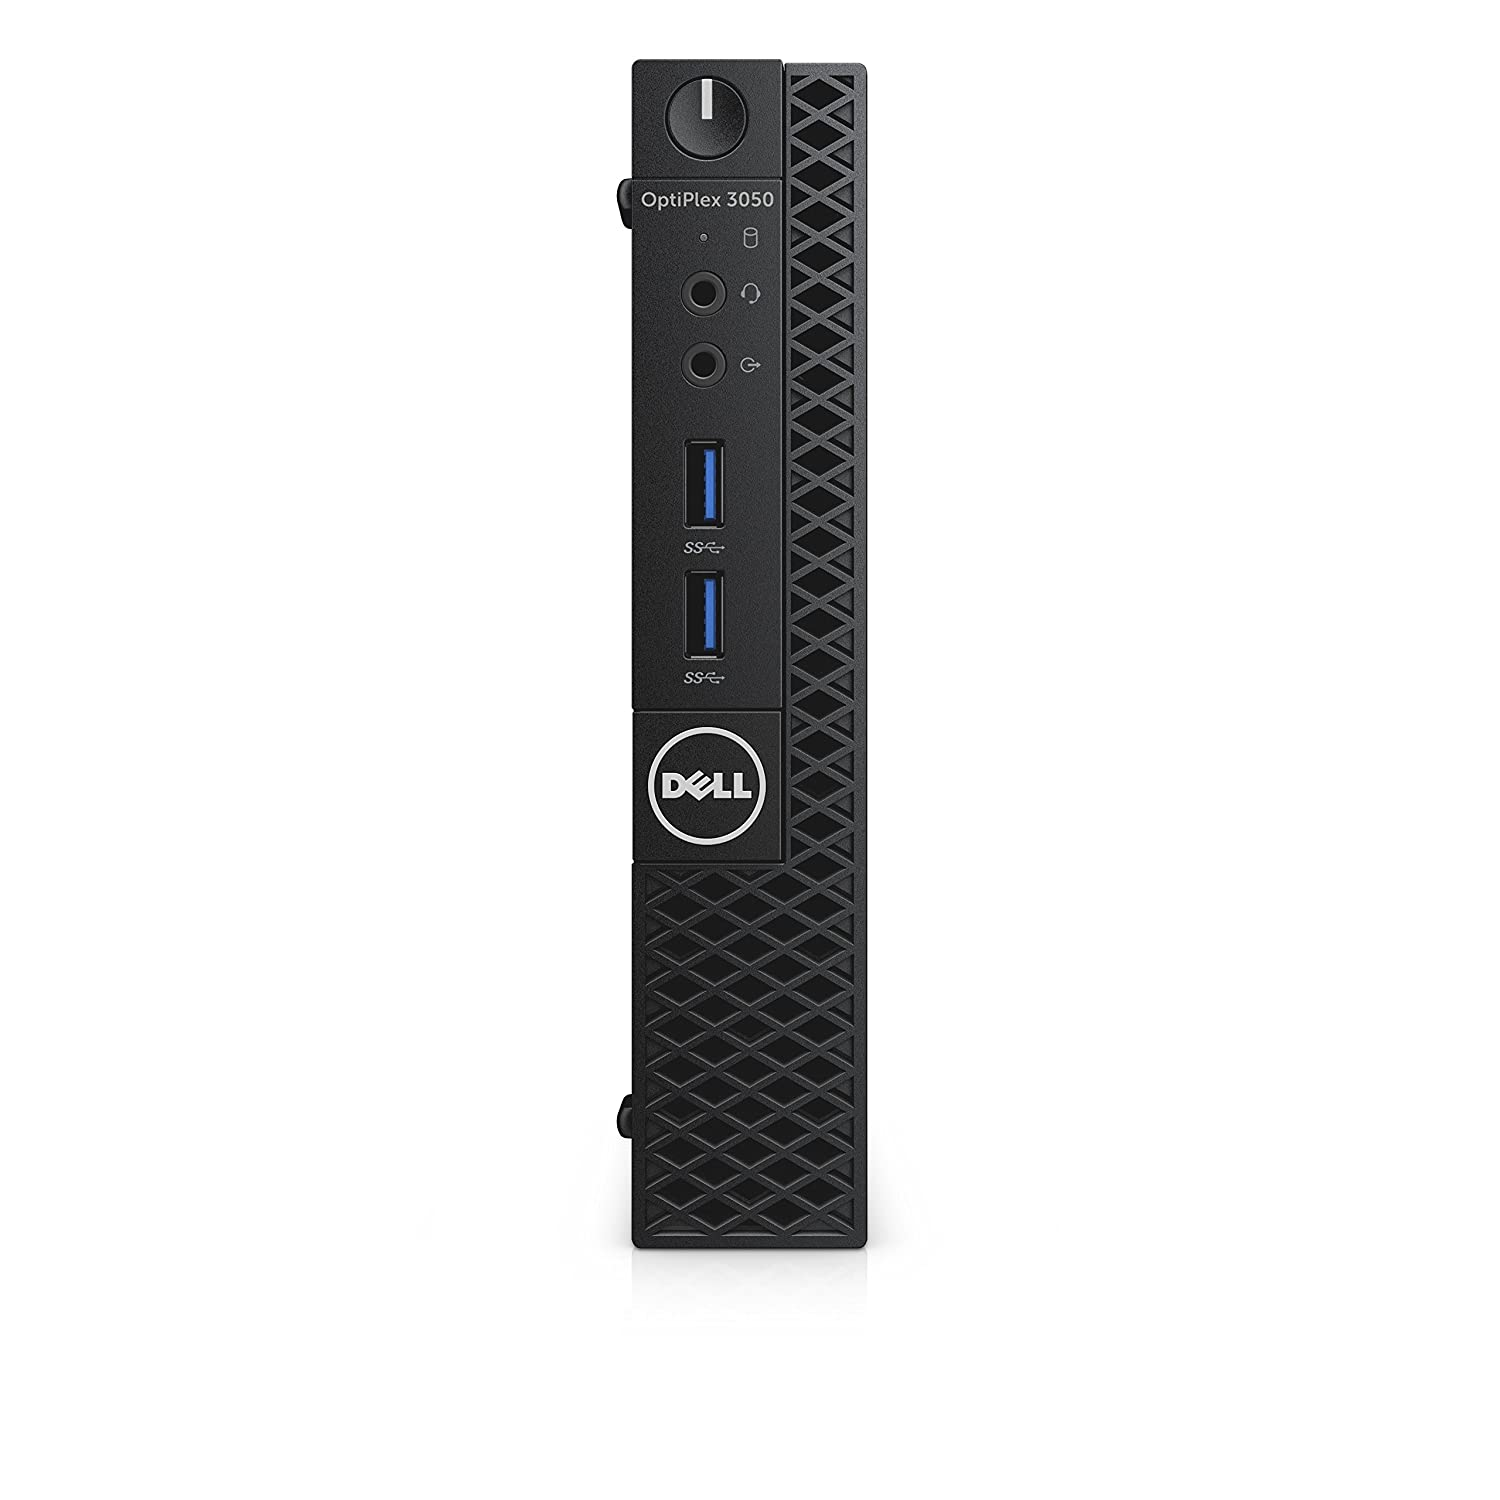 DELL OptiPlex 3050 2.70GHz i5-7500T WiFi Micro Torre Negro Mini PC - Ordenador de sobremesa (i5-7500T, 8GB, 256GB SSD, Windows 10 Pro)